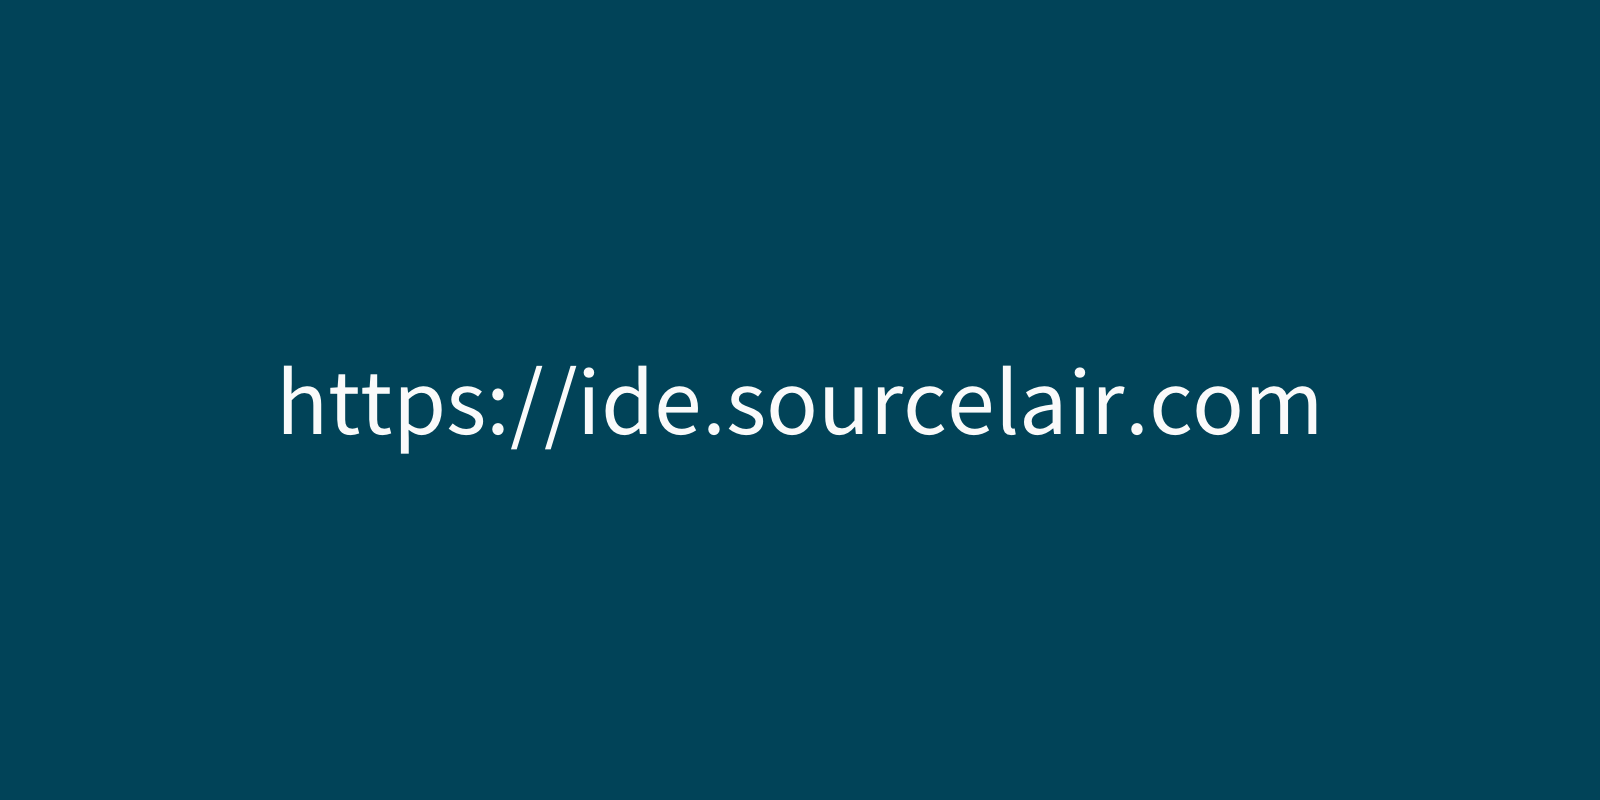 A new domain name for SourceLair IDE and a few updates